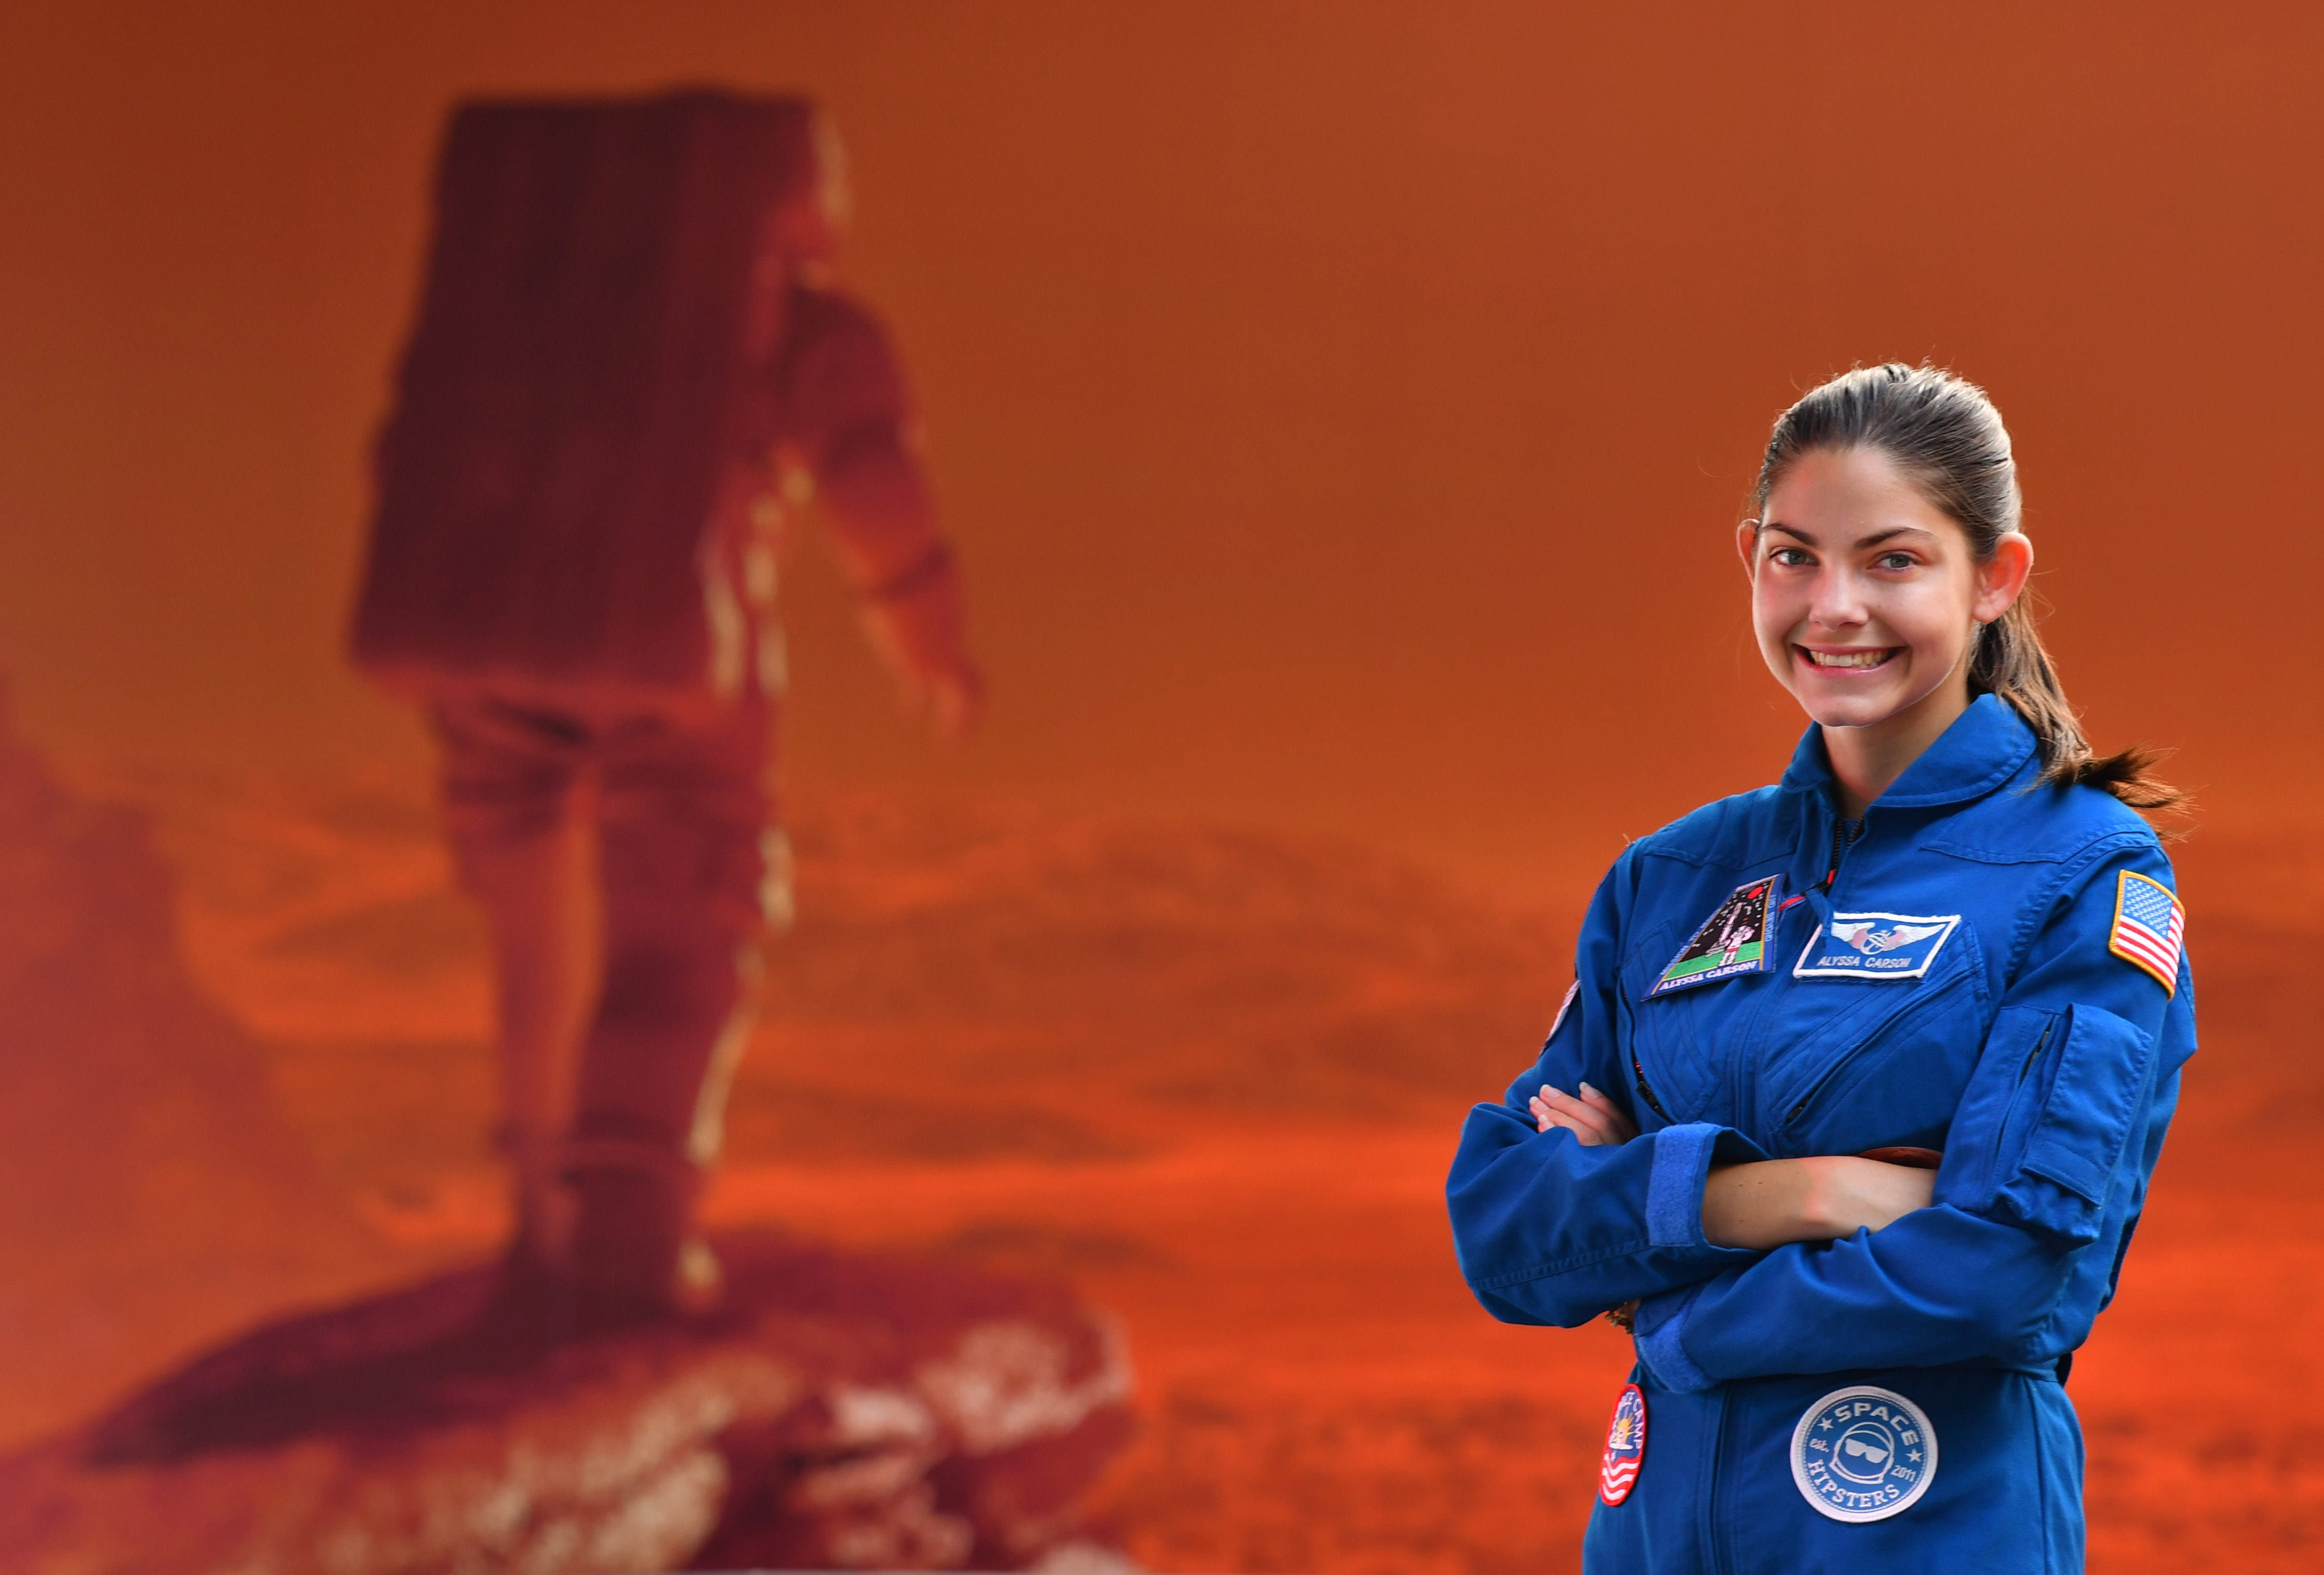 18-year-old with pilot's license is 'certified' for space. She wants to go to Mars